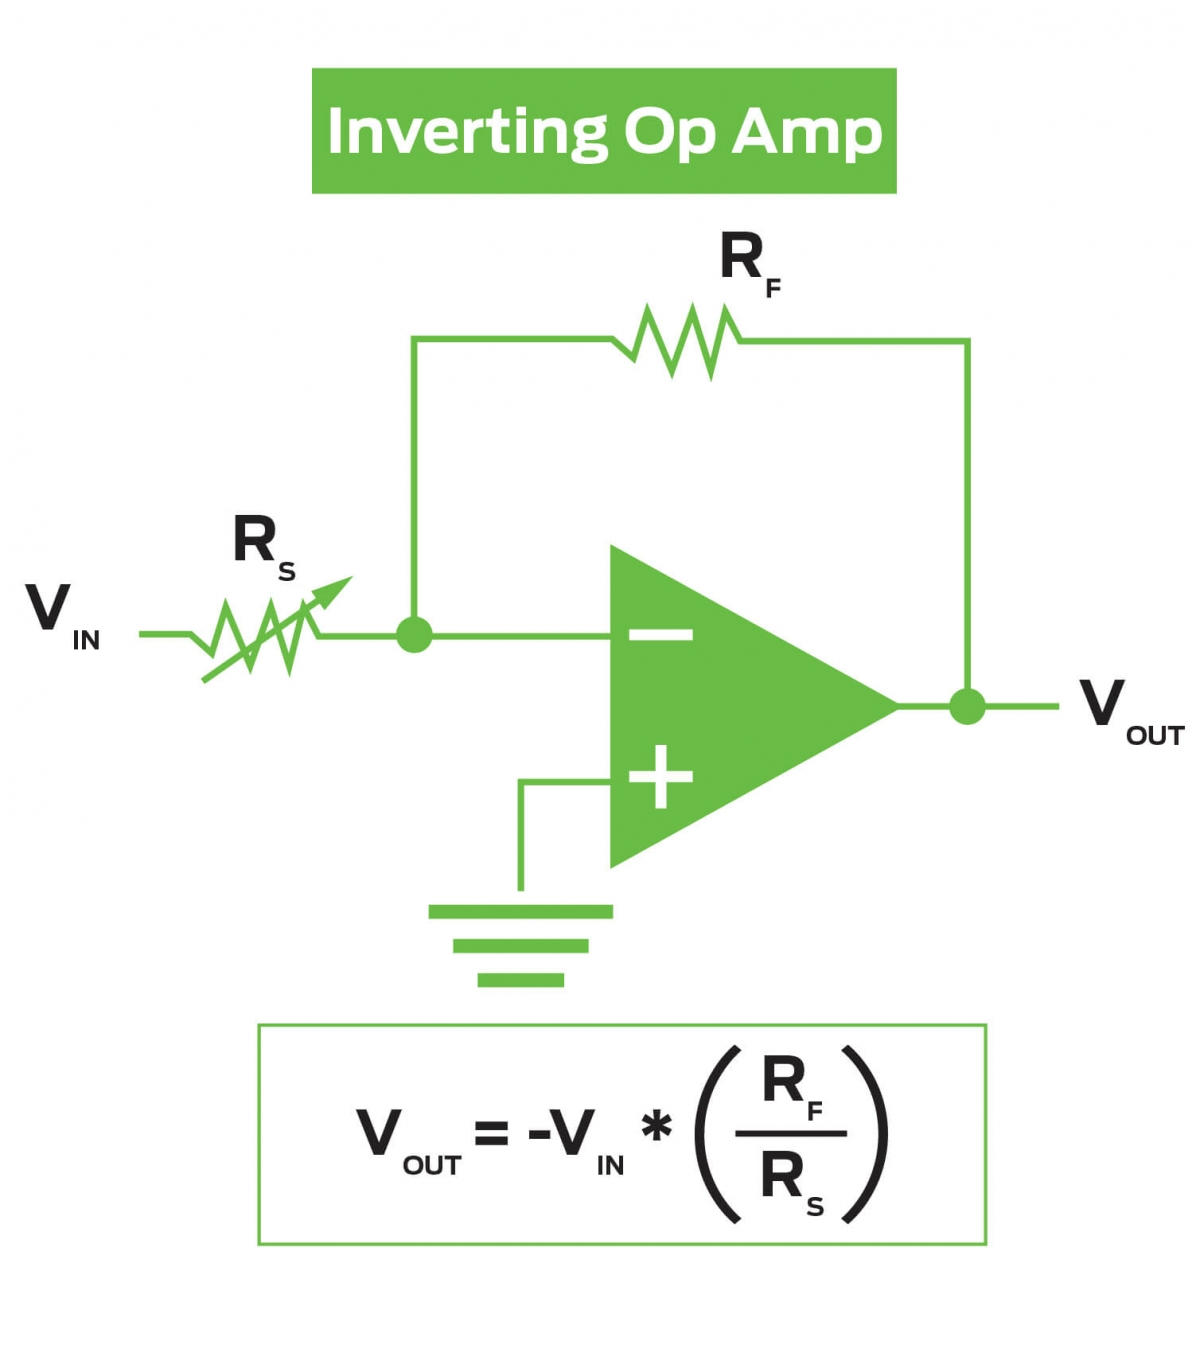 inverting op-amp diagram